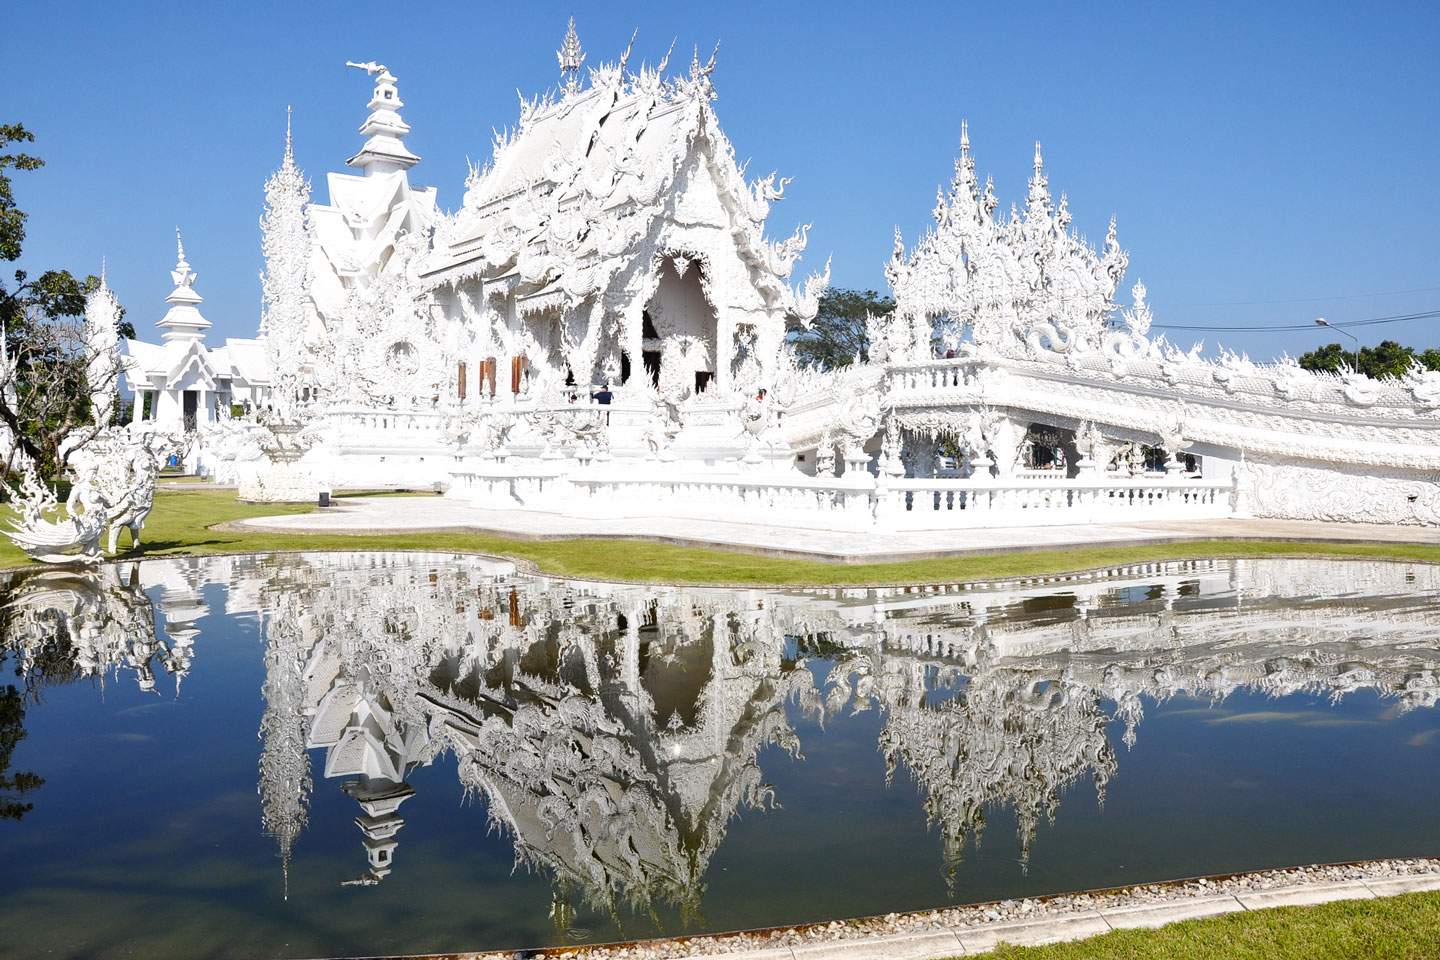 Do It Yourself Chiang Mai To Chiang Rai Travel Guide On How To Get There